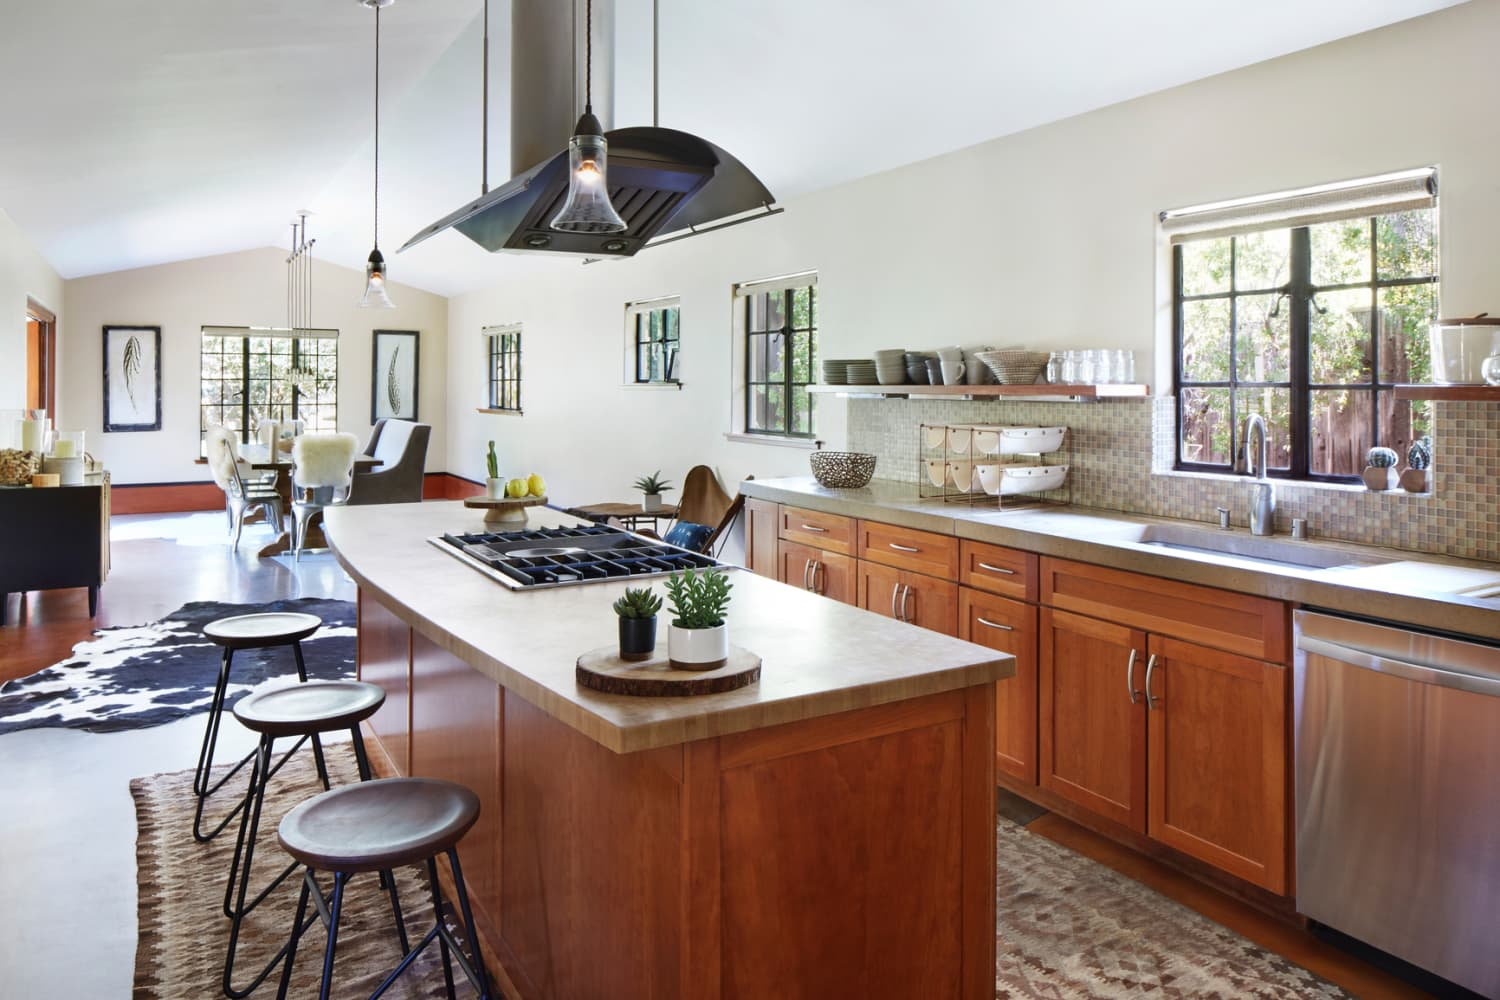 8 Things That Are Always Worth the Extra Money for Your Kitchen, According to Home Experts